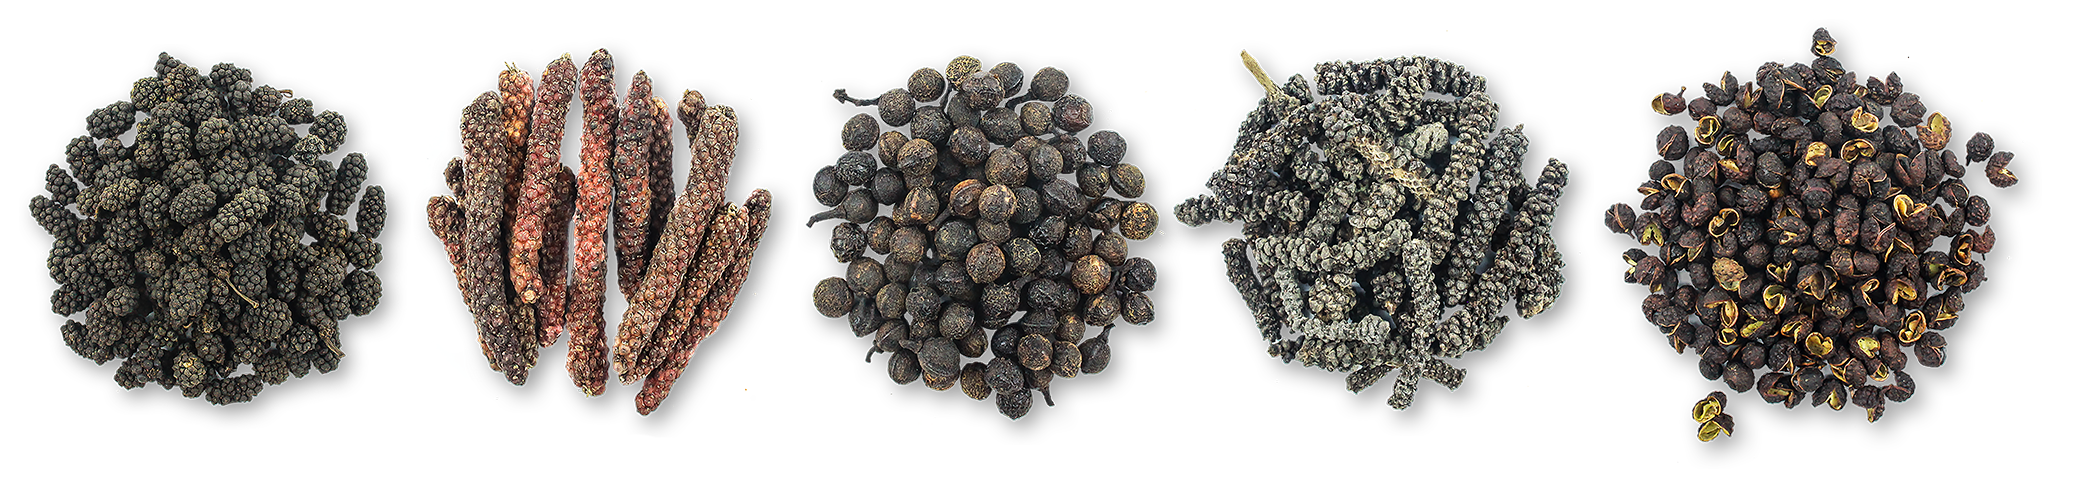 Some easy to follow tips for working with exotic peppercorns.